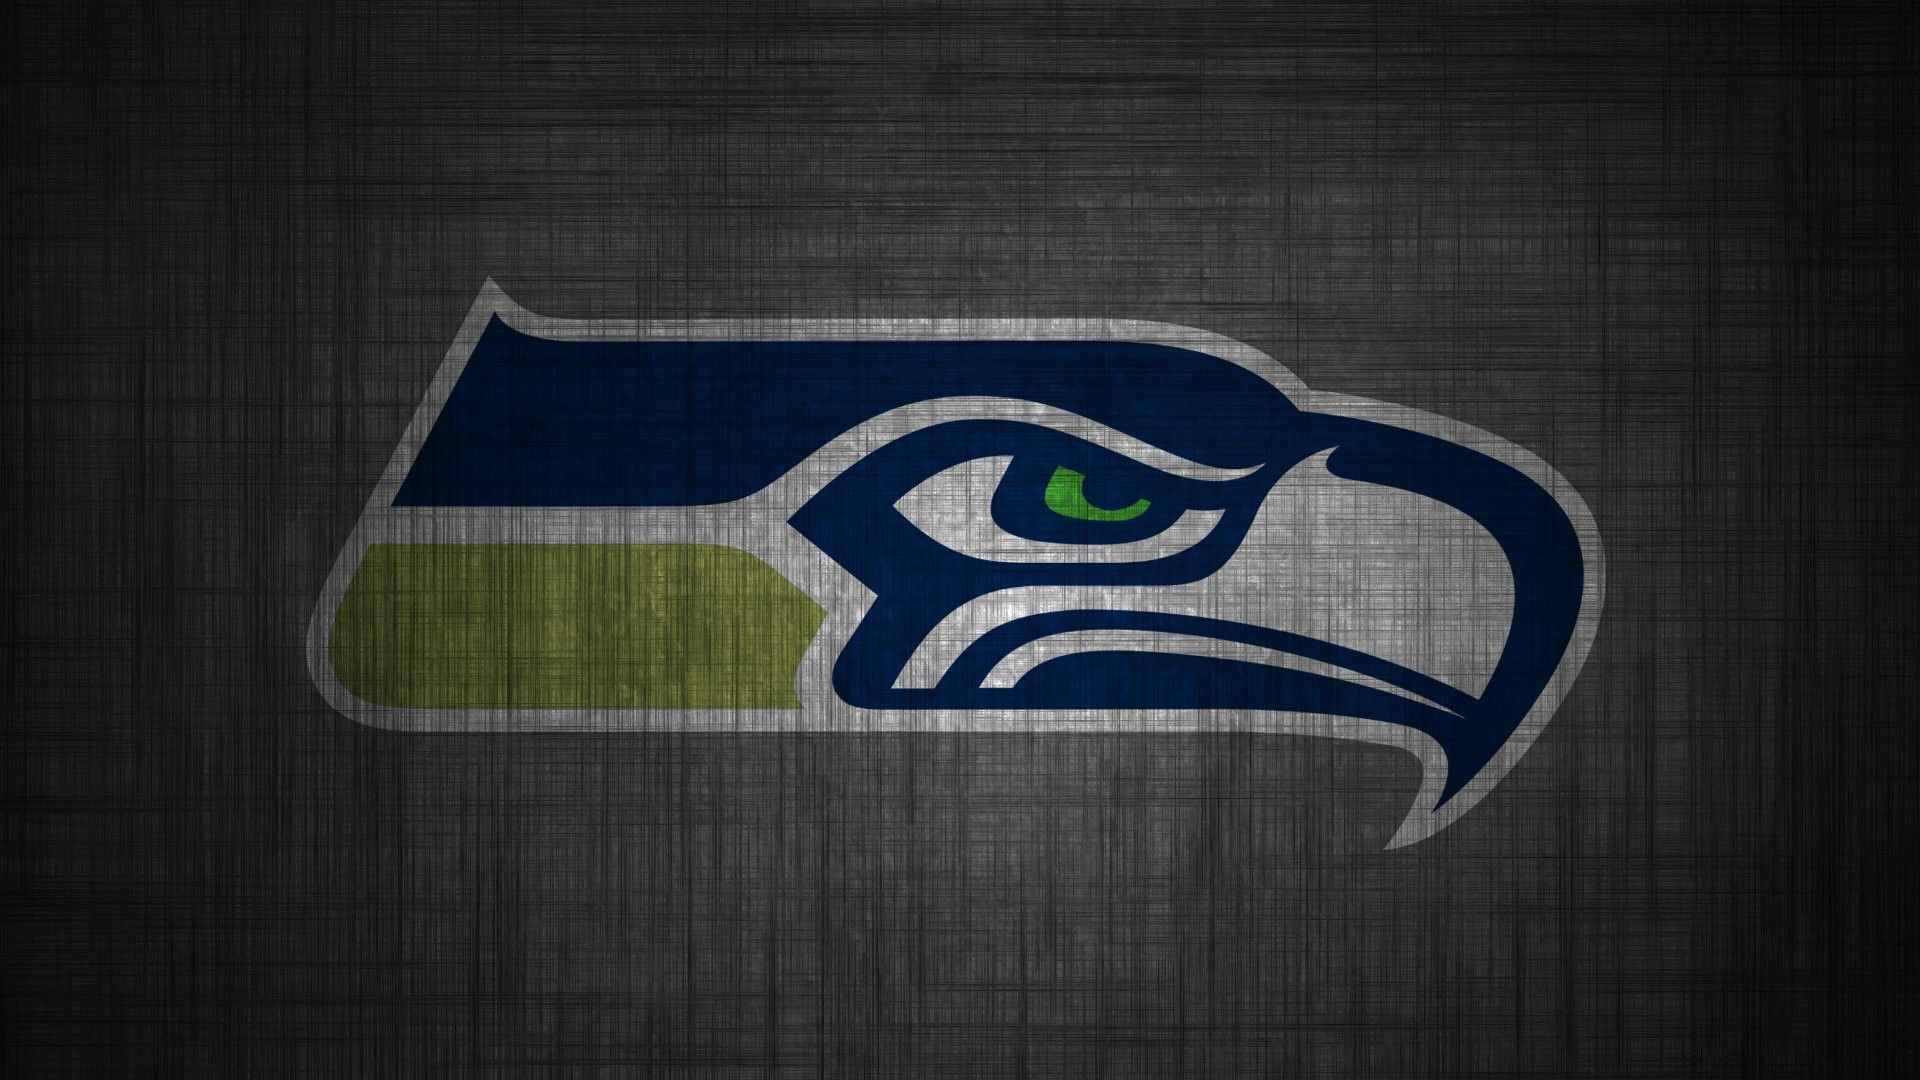 Seahawks Under Armour Logo Wallpapers On Wallpaperdog